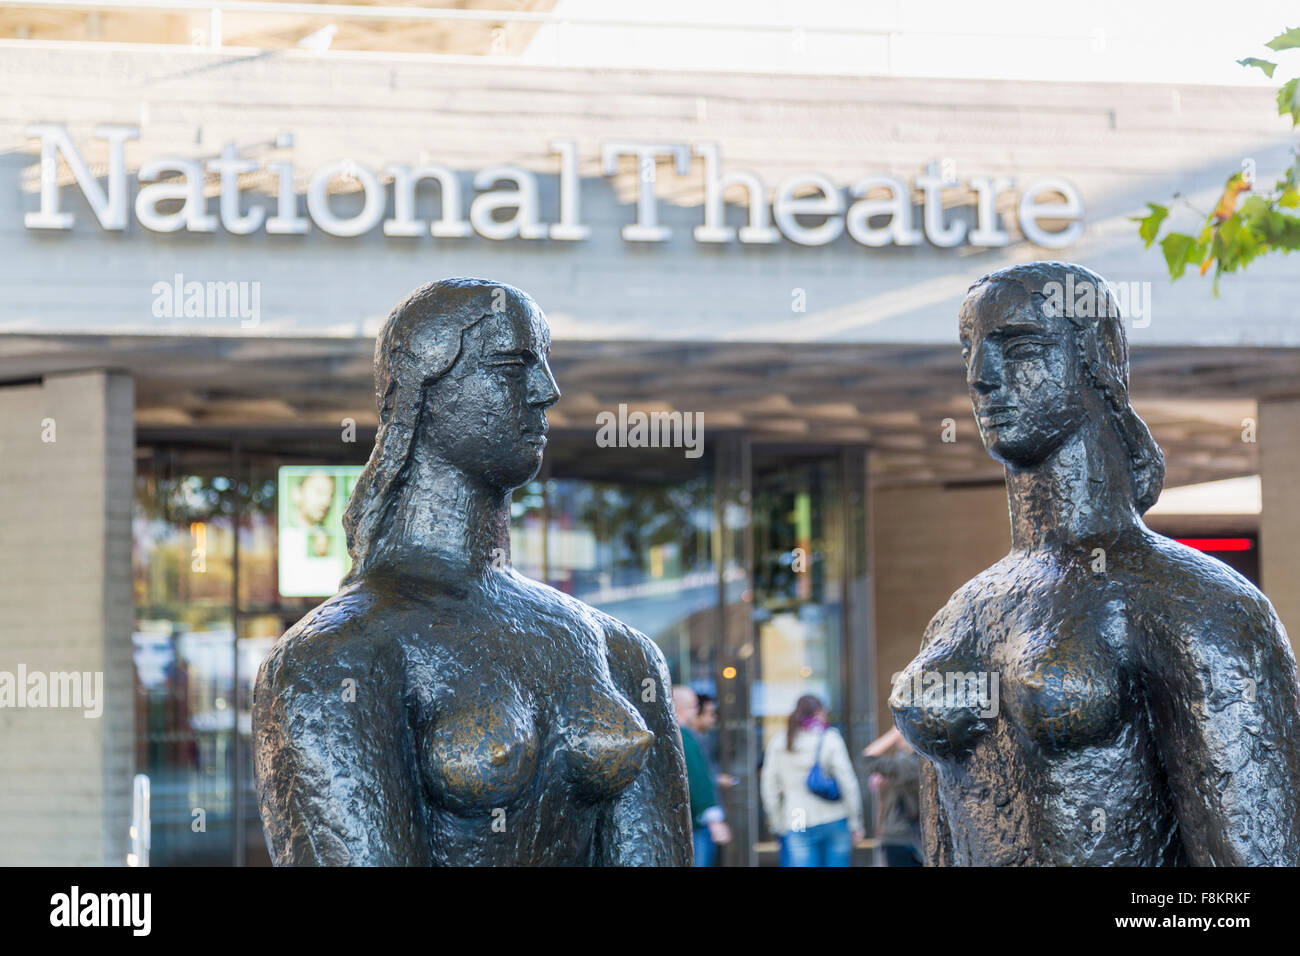 Statue called London Pride at entrance to the National Theatre, South Bank, London, England - Stock Image